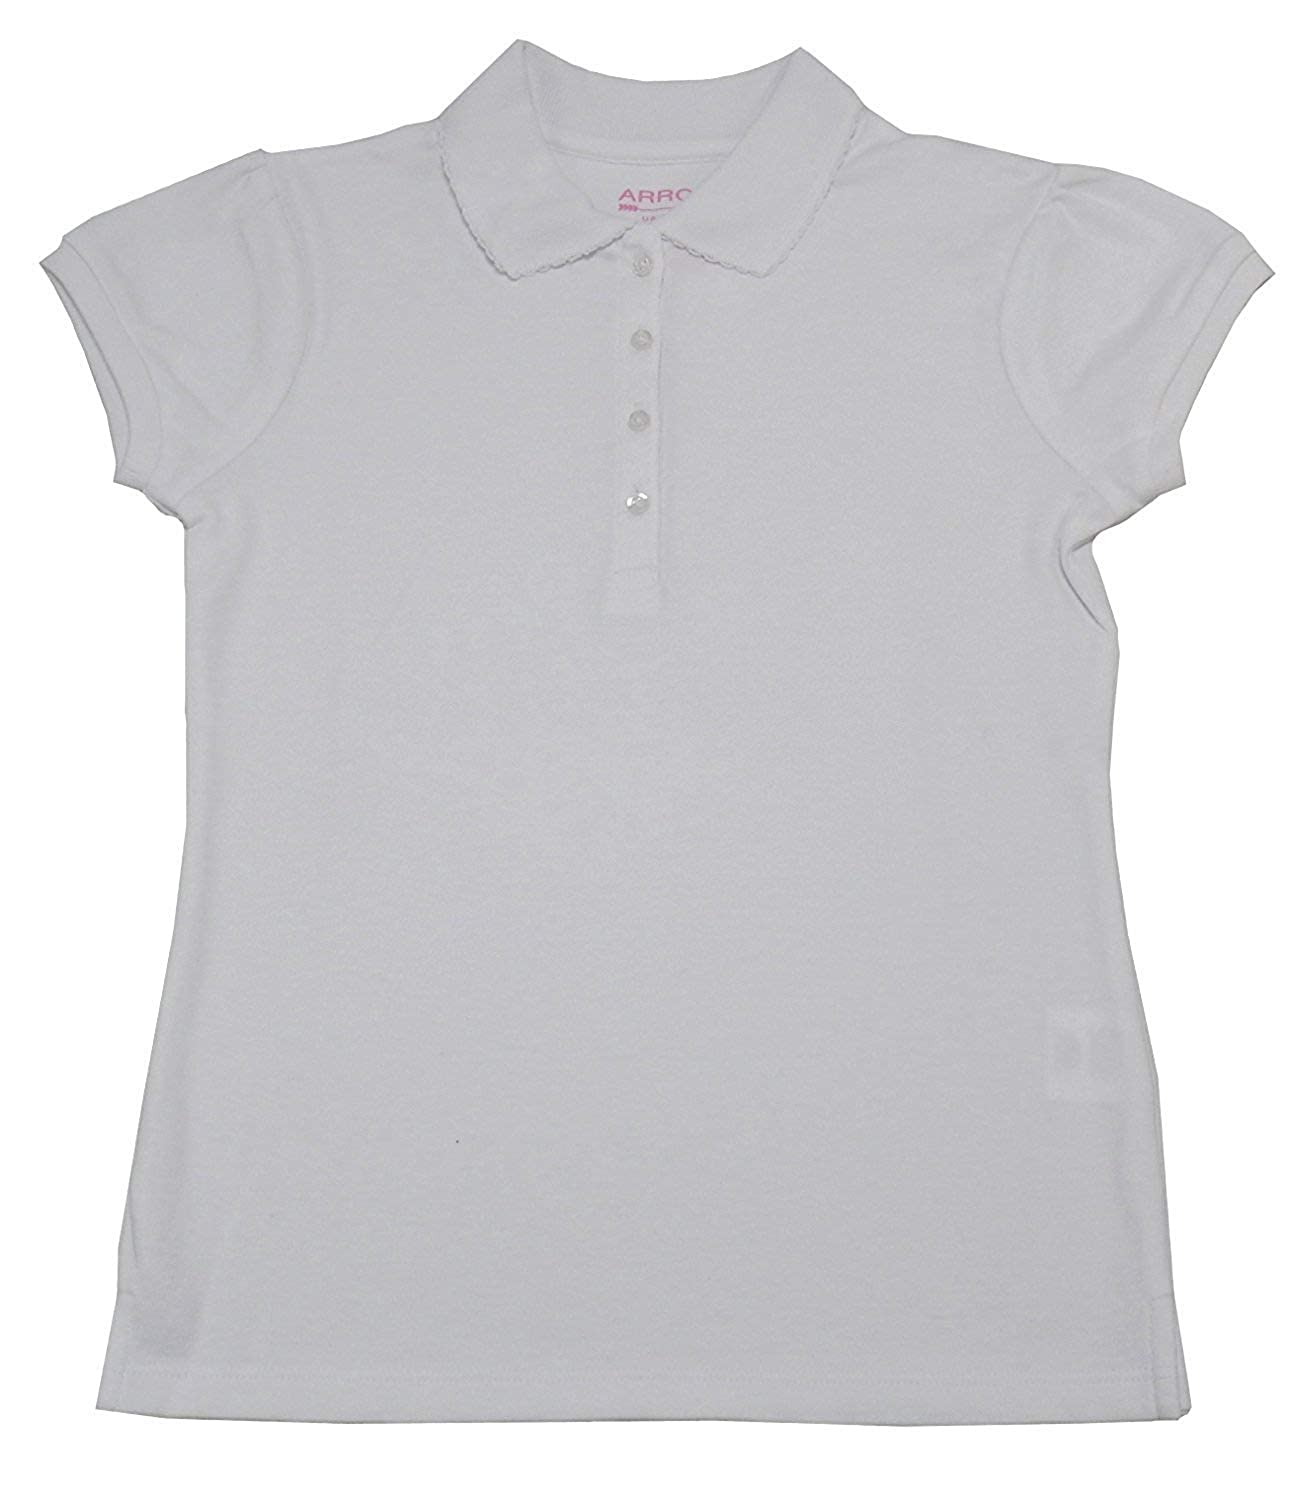 Arrow Girls Approved Schoolwear Large White Short Sleeve Polo Shirt 12//14